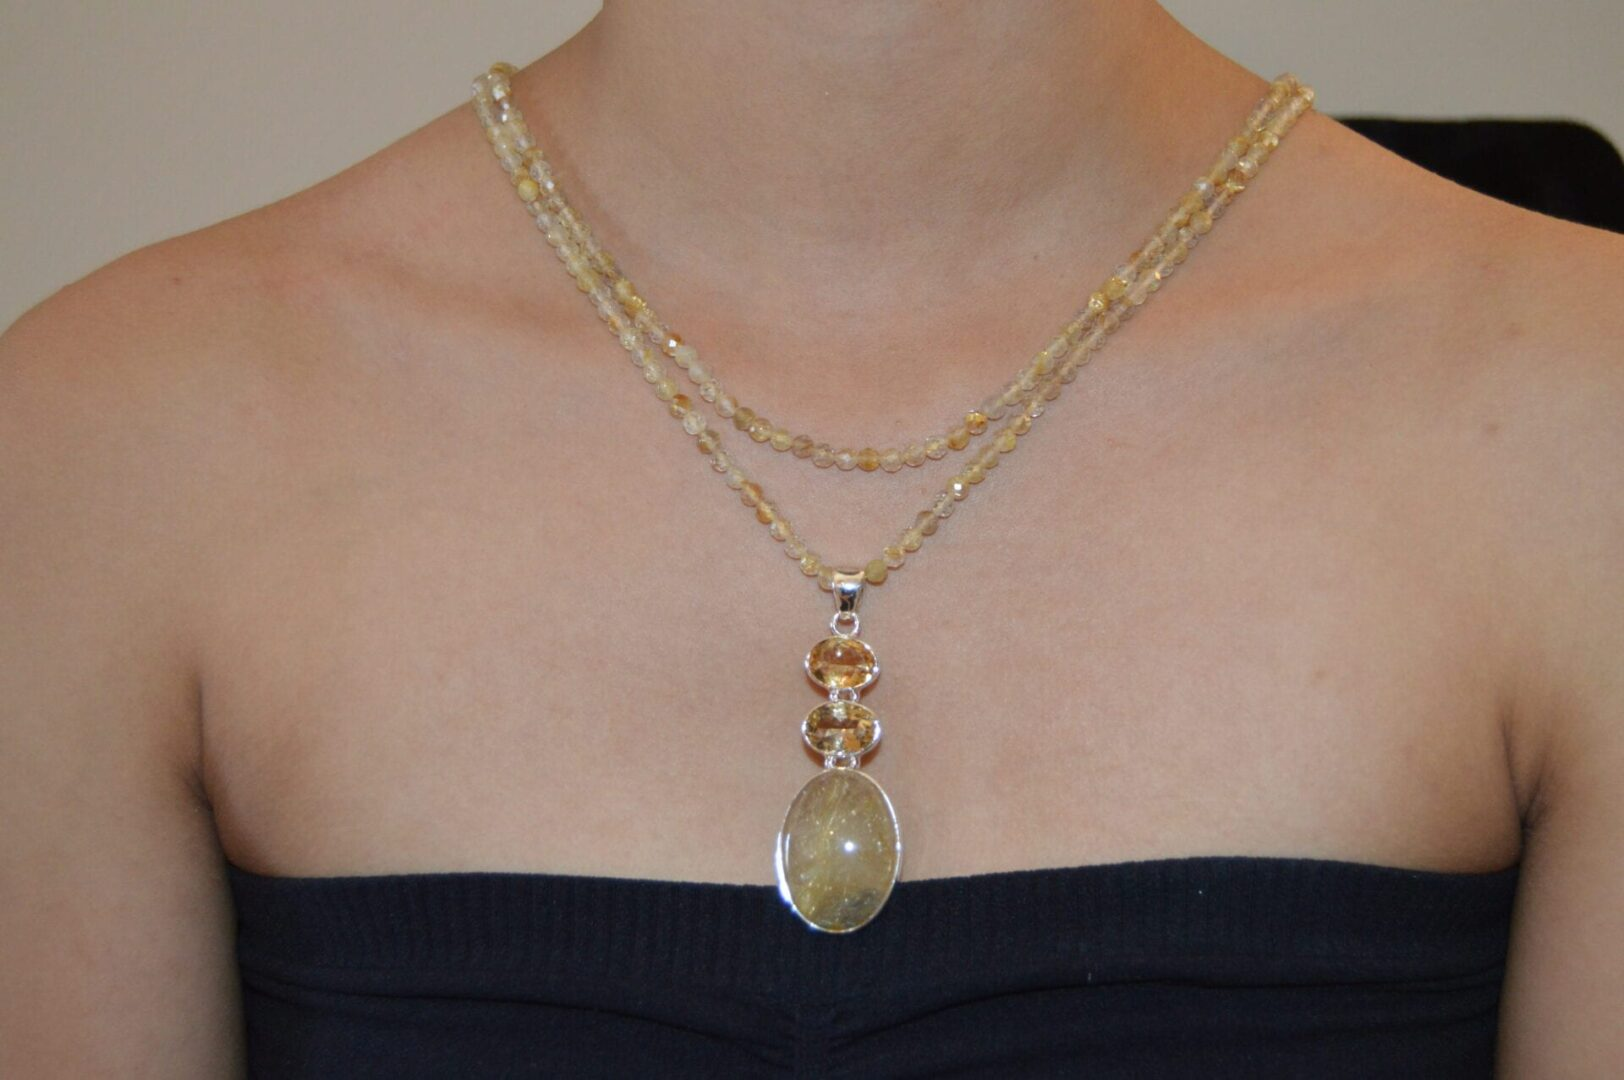 An Angelica double necklace